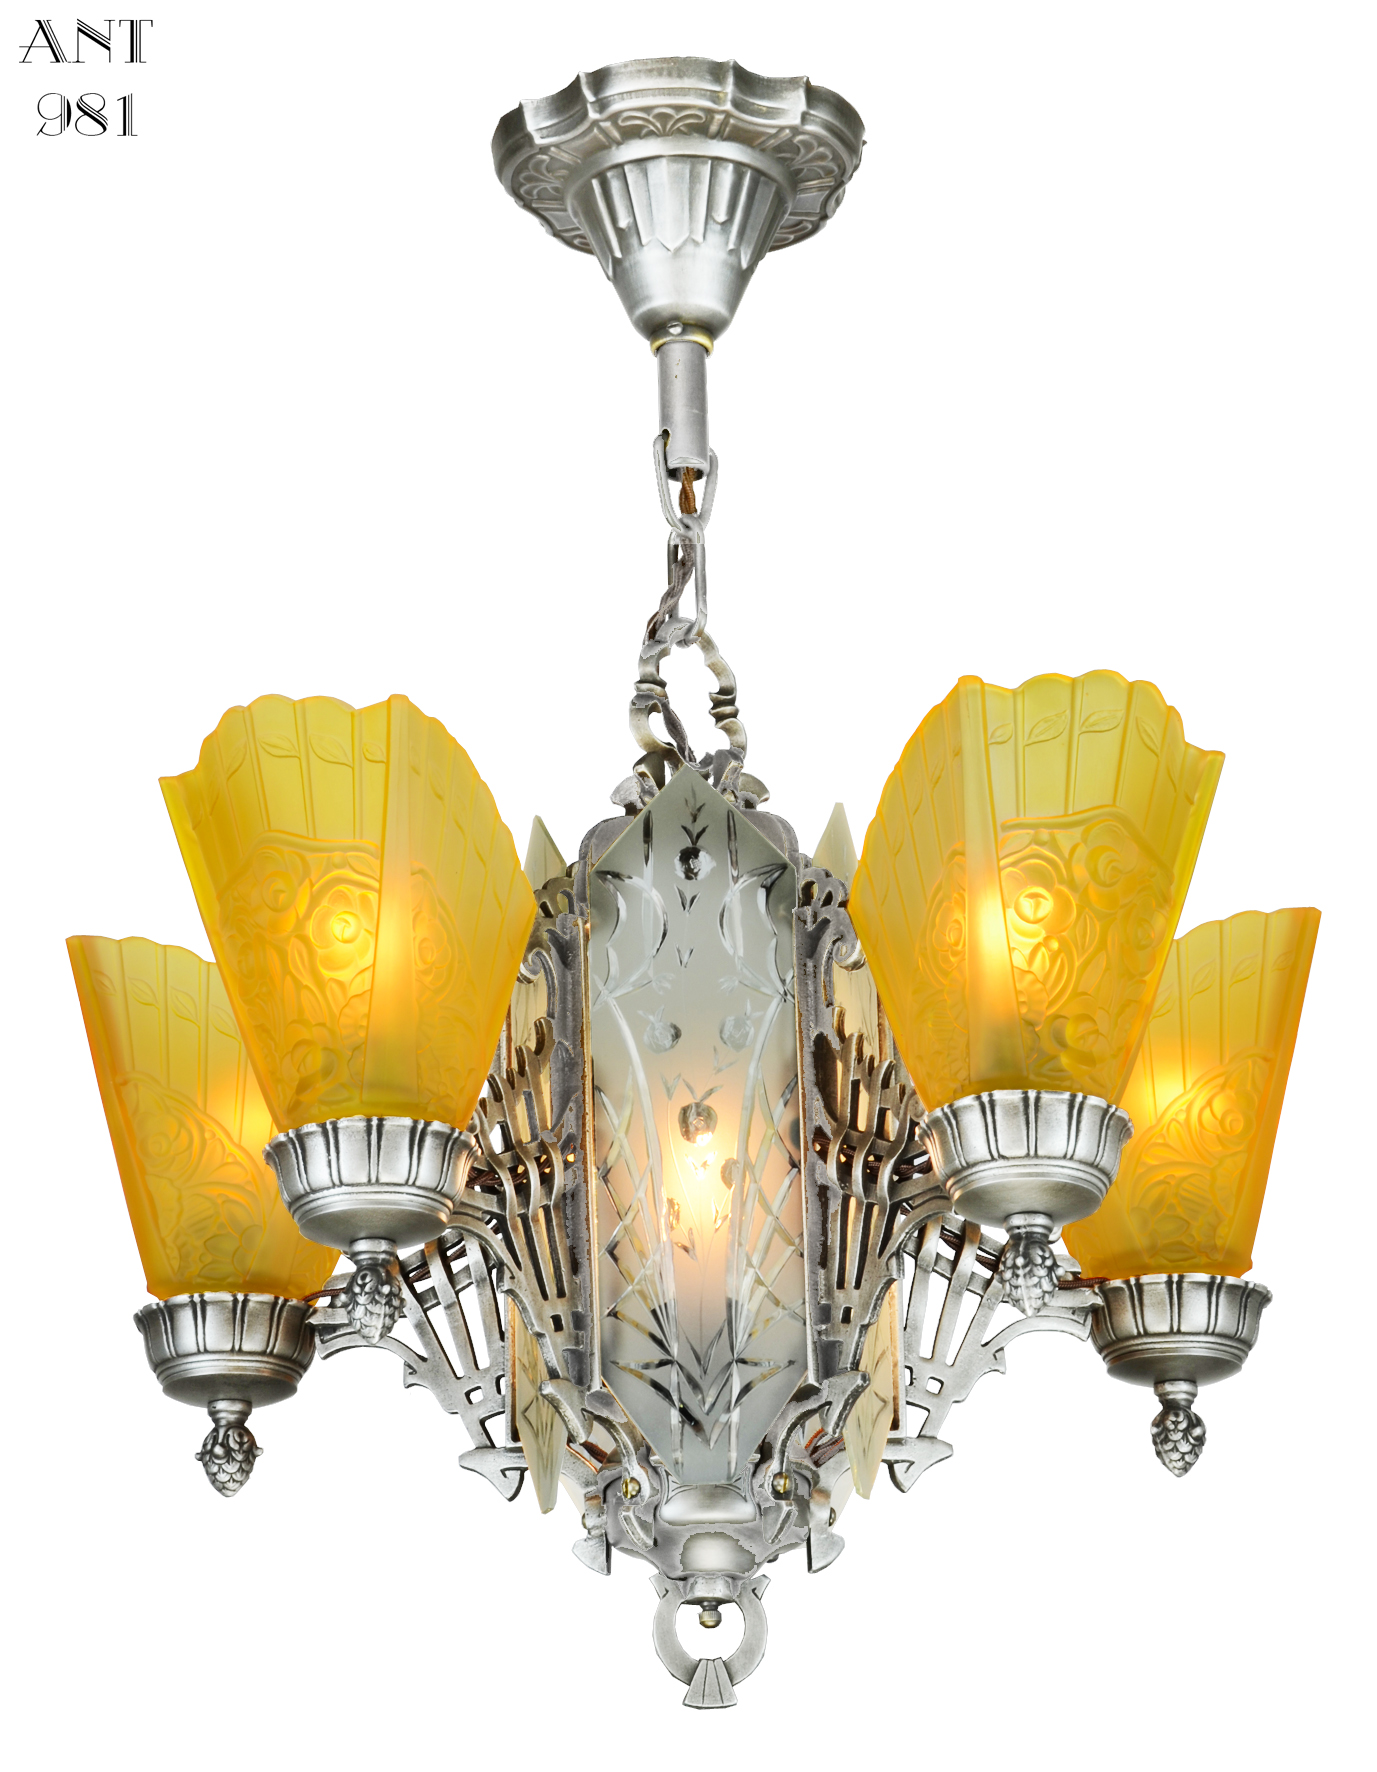 Art Deco Slip Shade Chandelier With Cut Gl Center Panels A Pair Is Available Ant 981